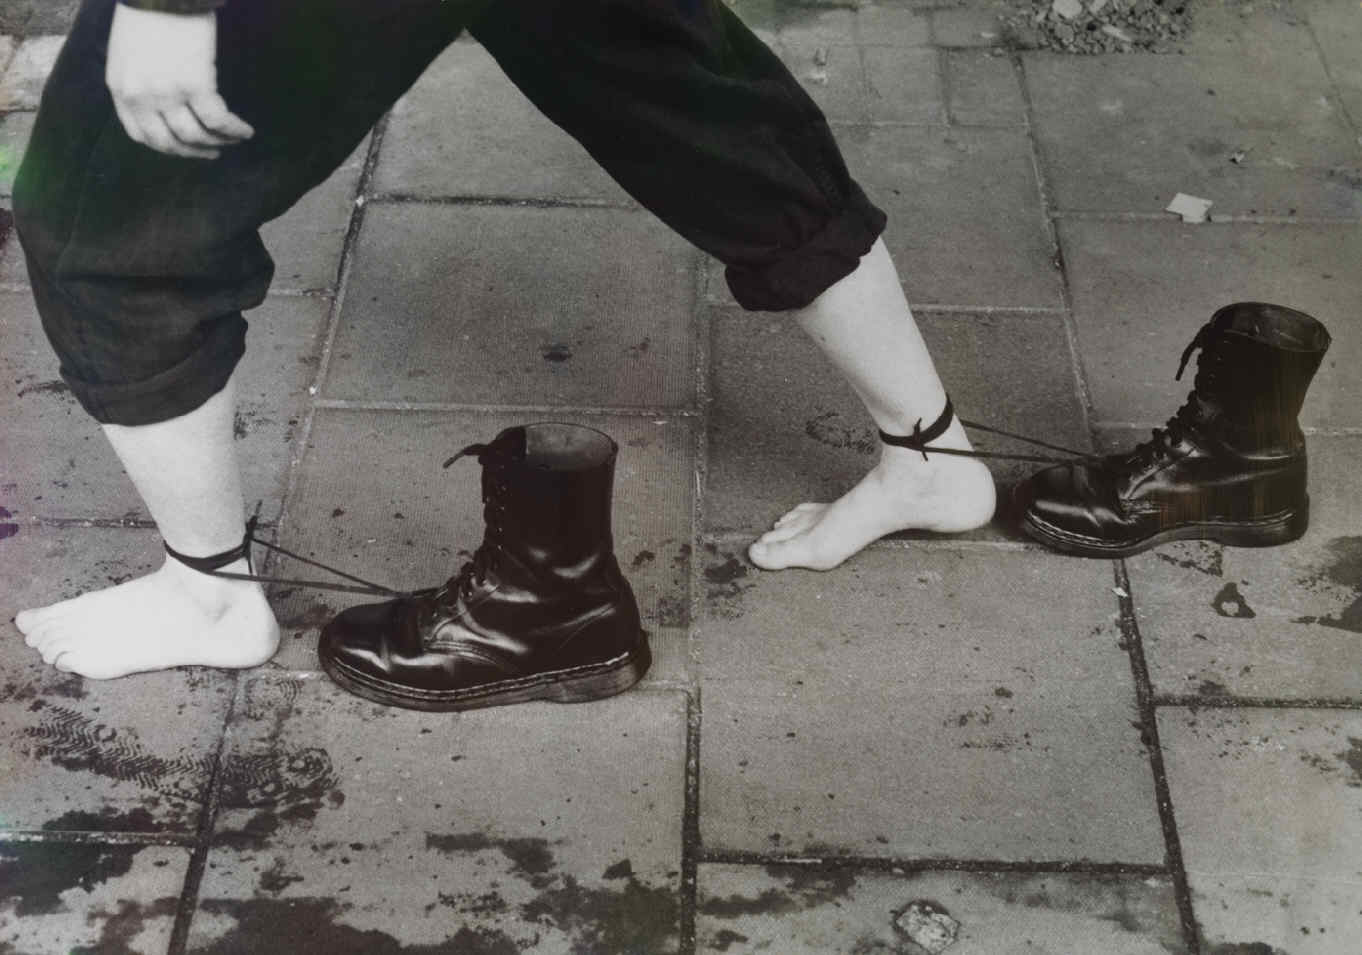 mona_hatoum_roadworks_boots_dragging